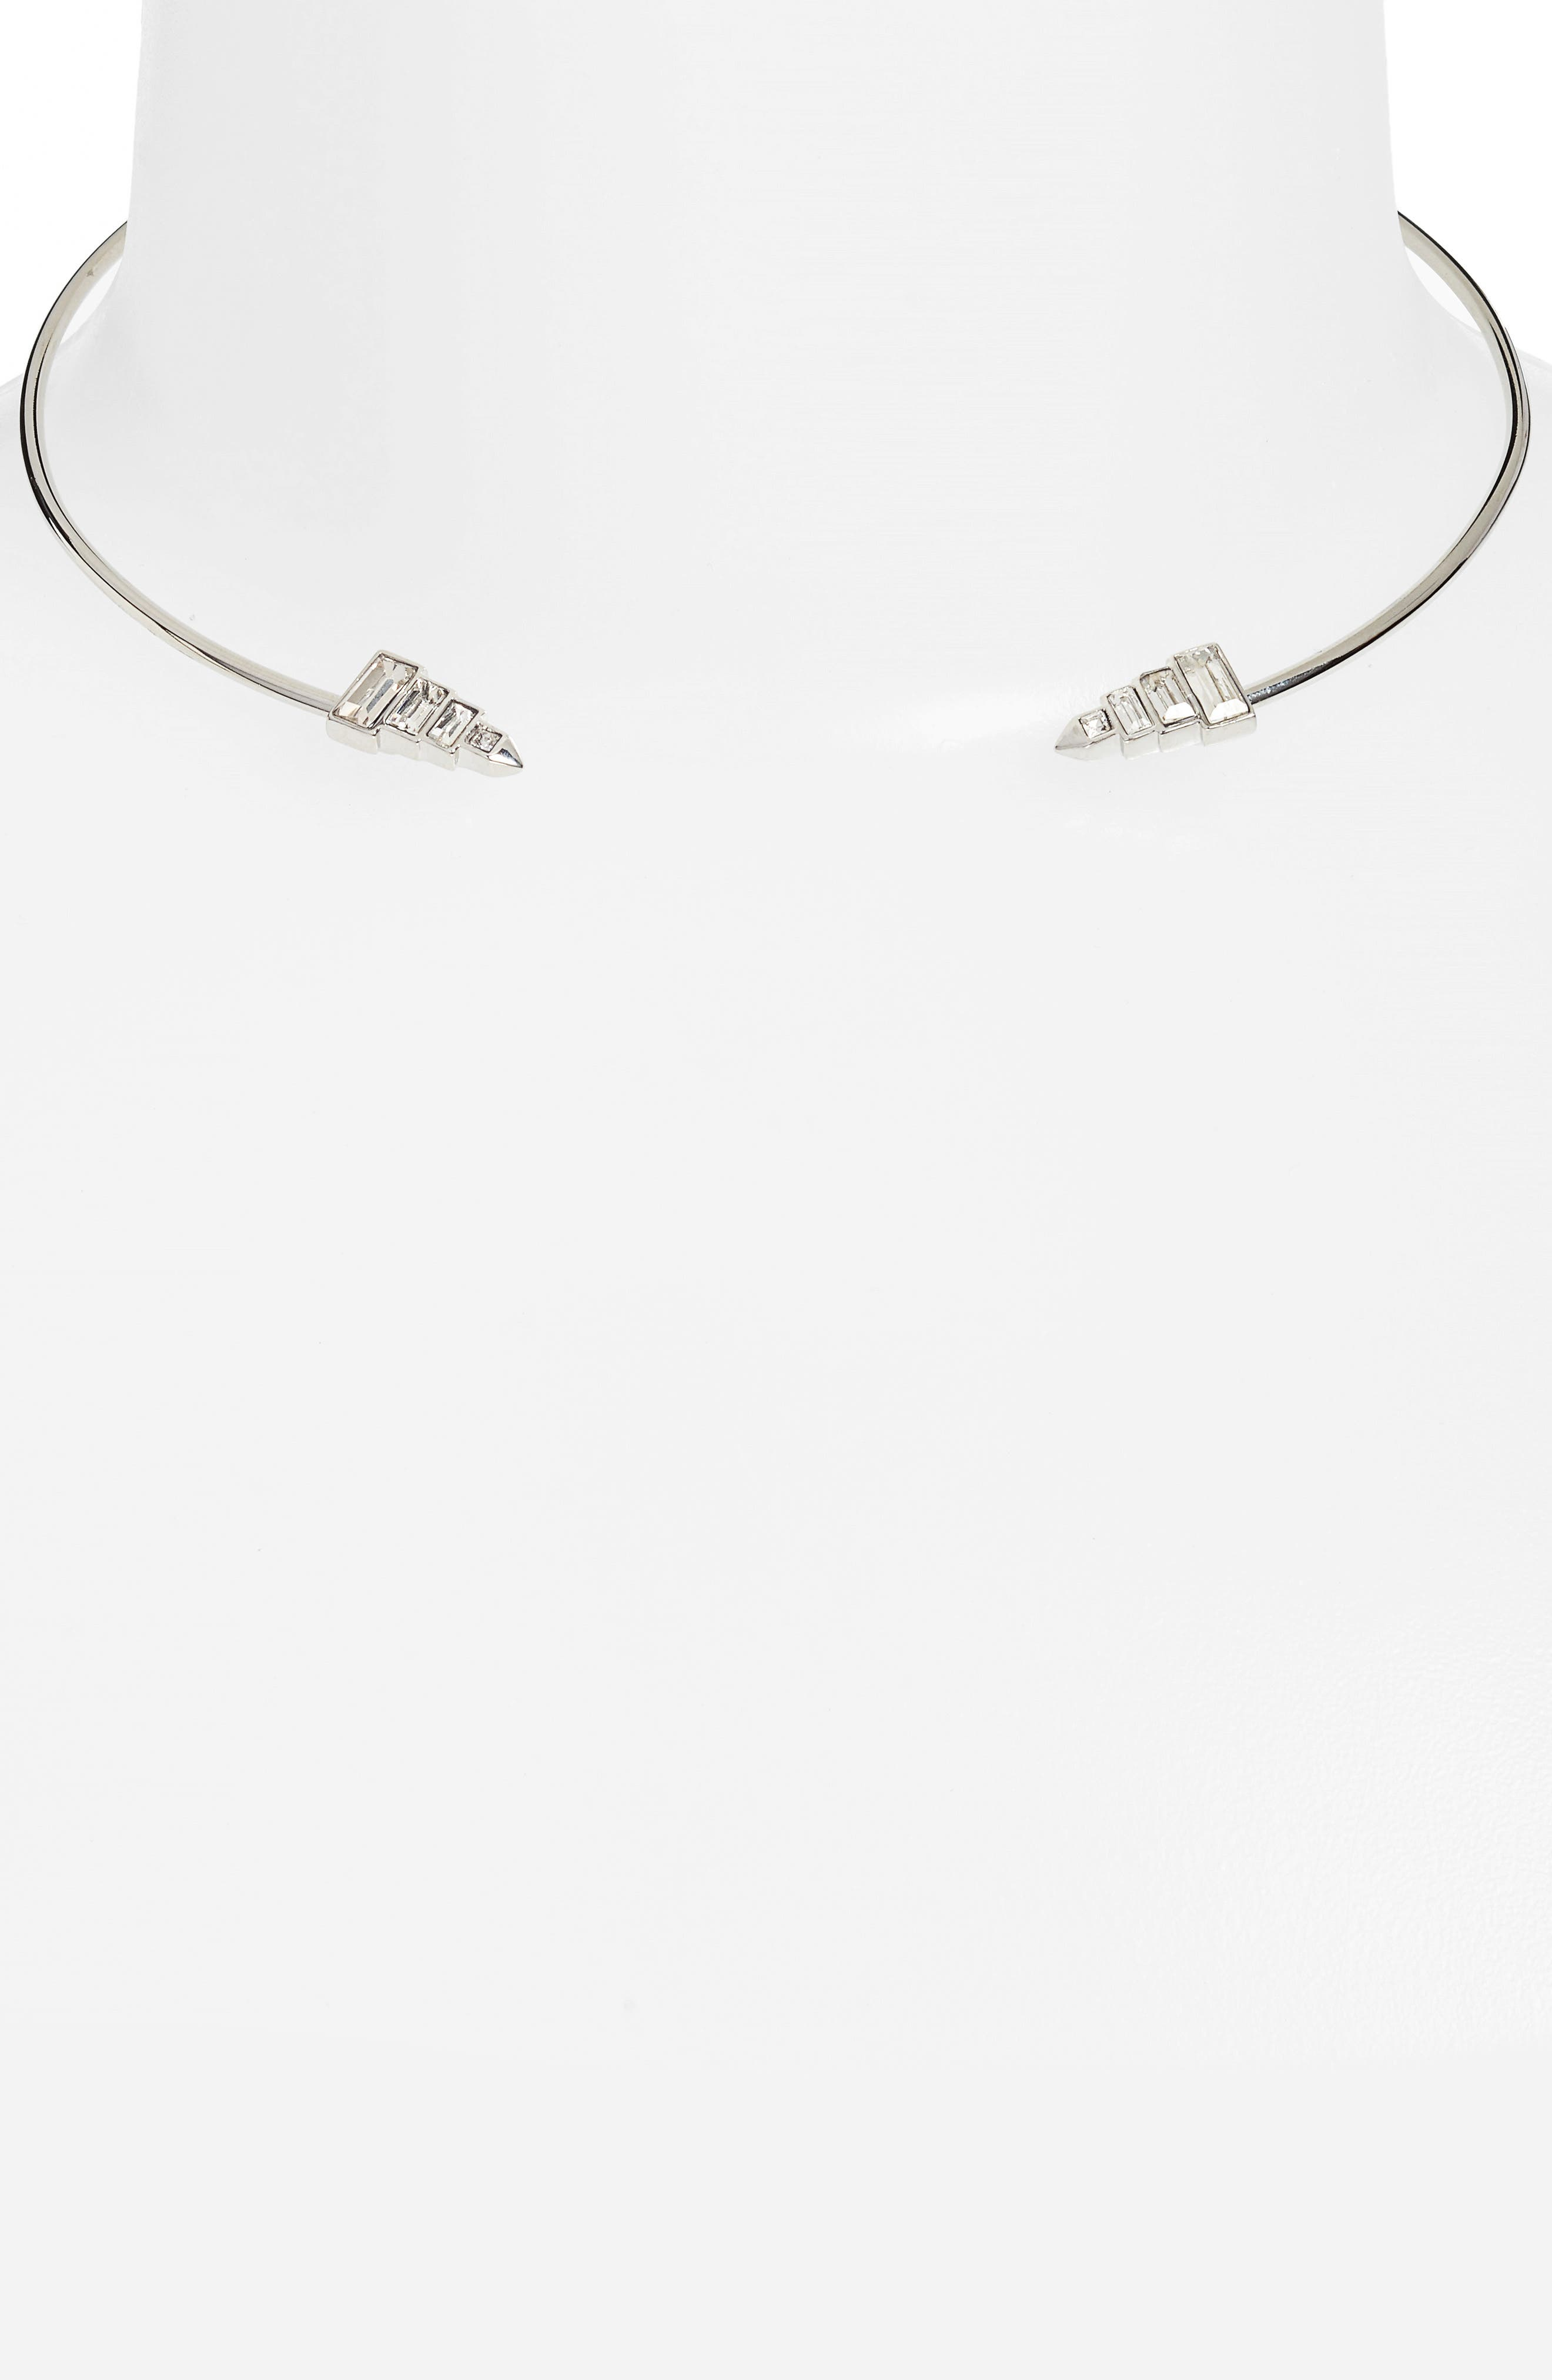 Open Collar Necklace,                             Alternate thumbnail 2, color,                             Clear/ Silver